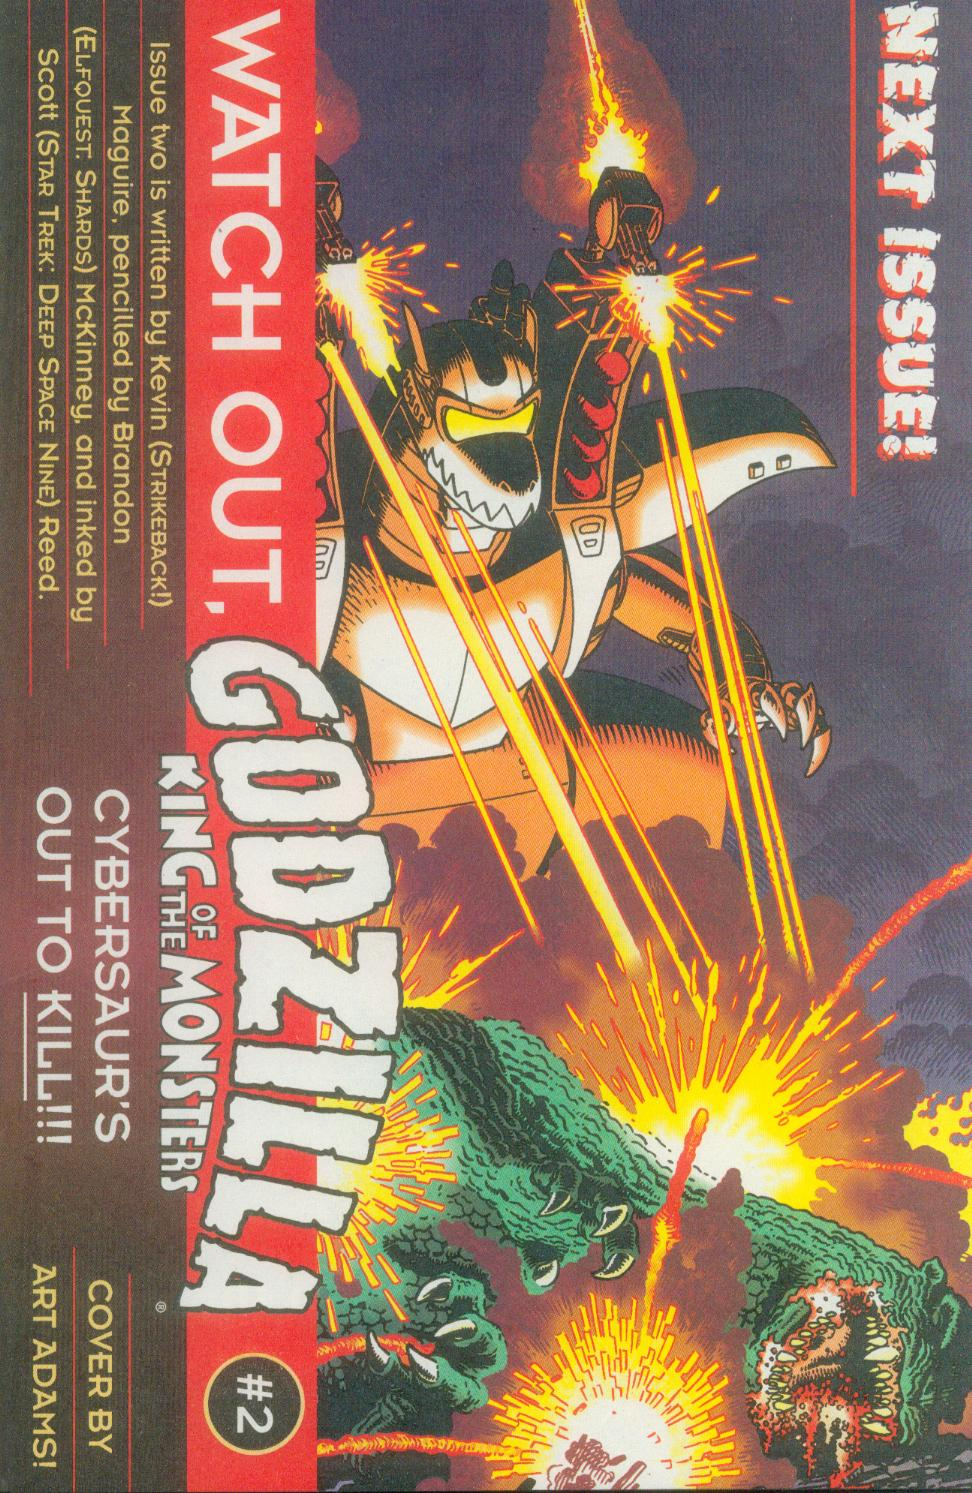 Godzilla (1995) Issue #1 #2 - English 28